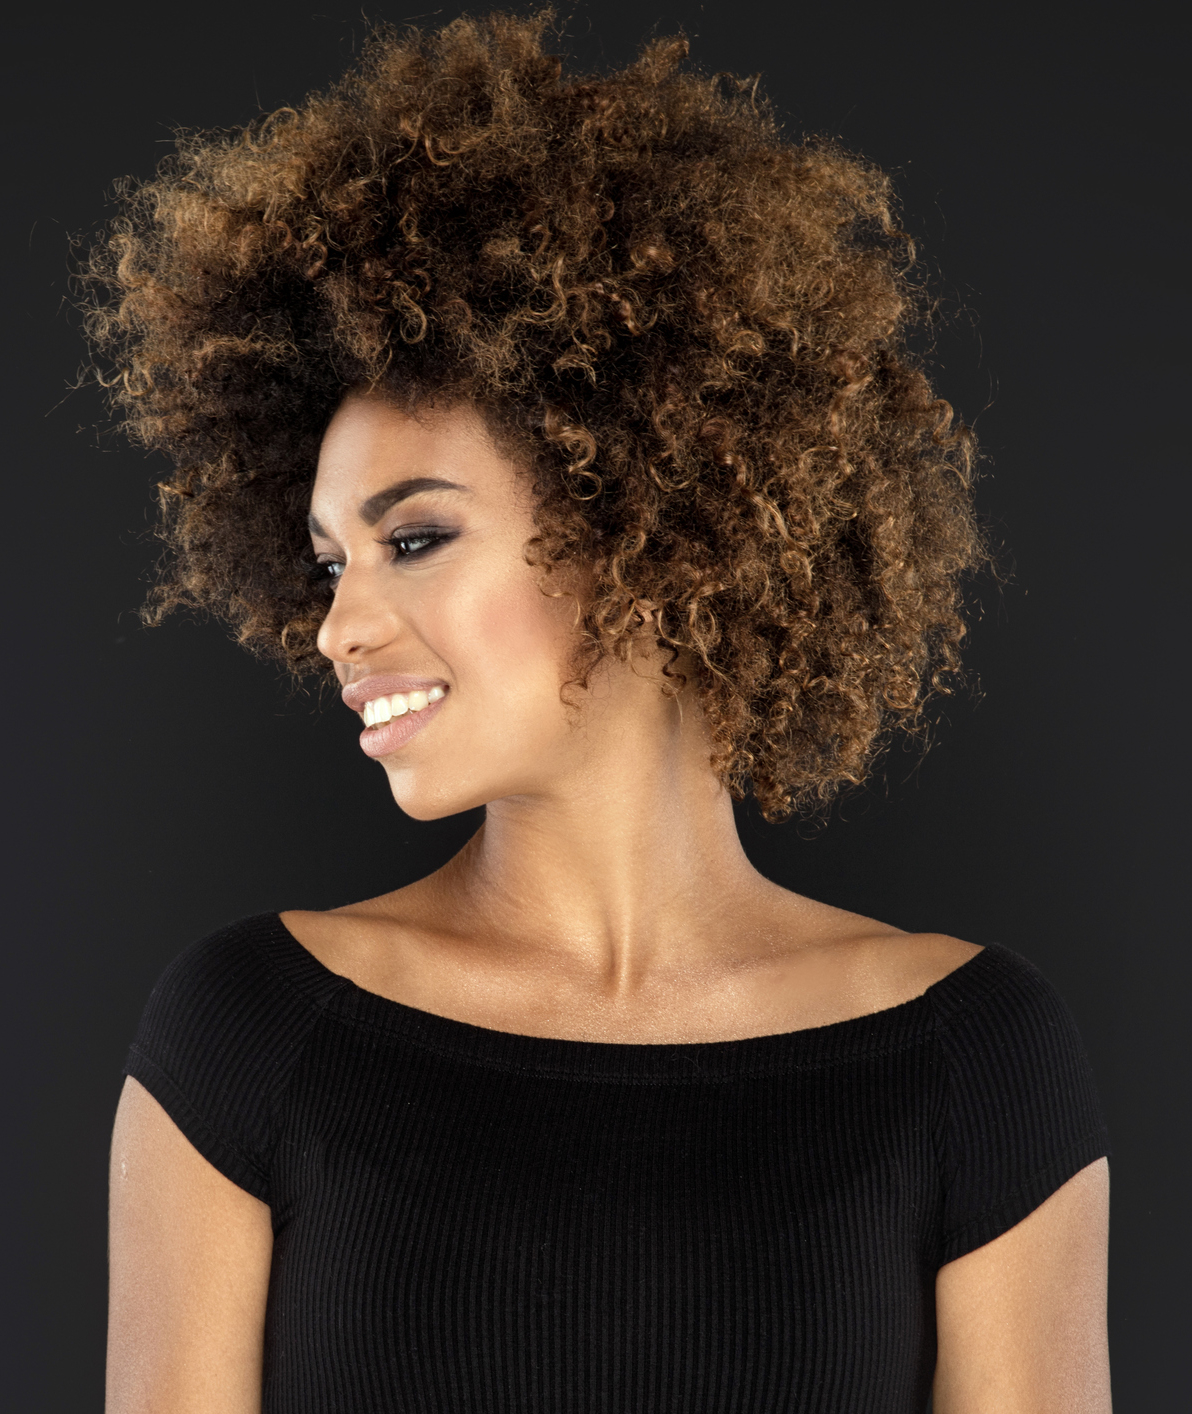 Portrait of girl with afro hairstyle.